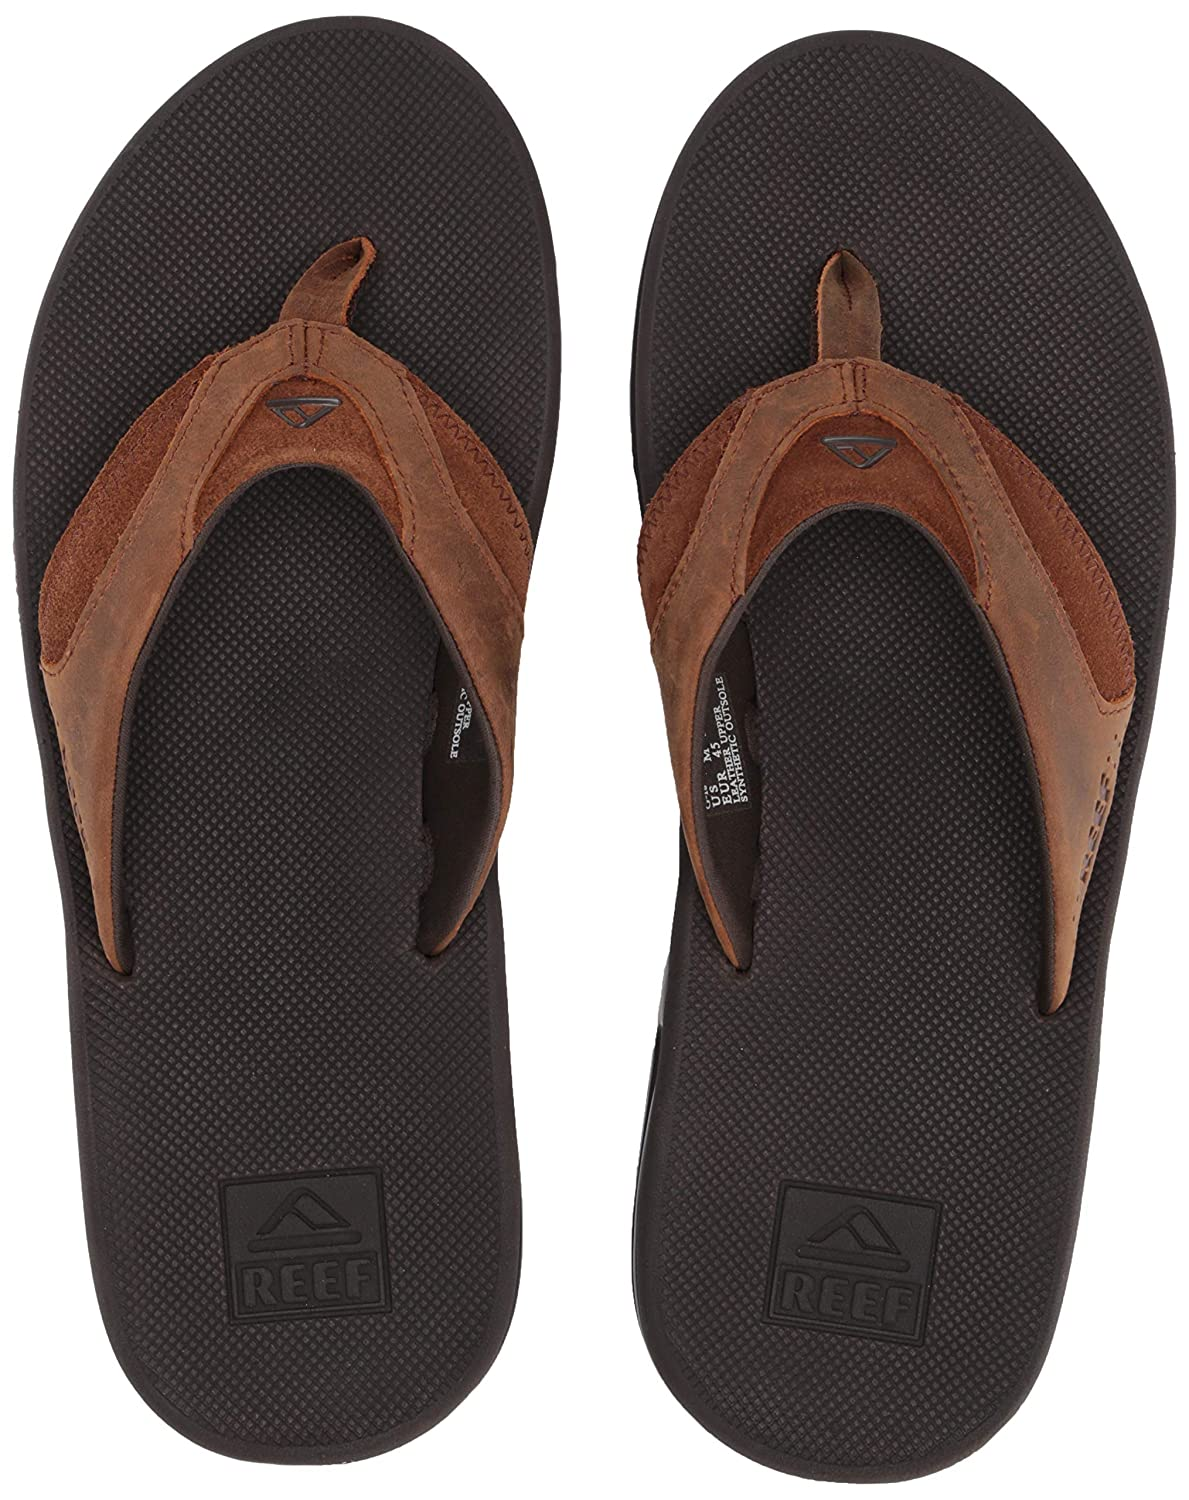 Reef Leather Fanning, Chanclas para Hombre, Marrón (Bronze BRZ), 37.5 EU